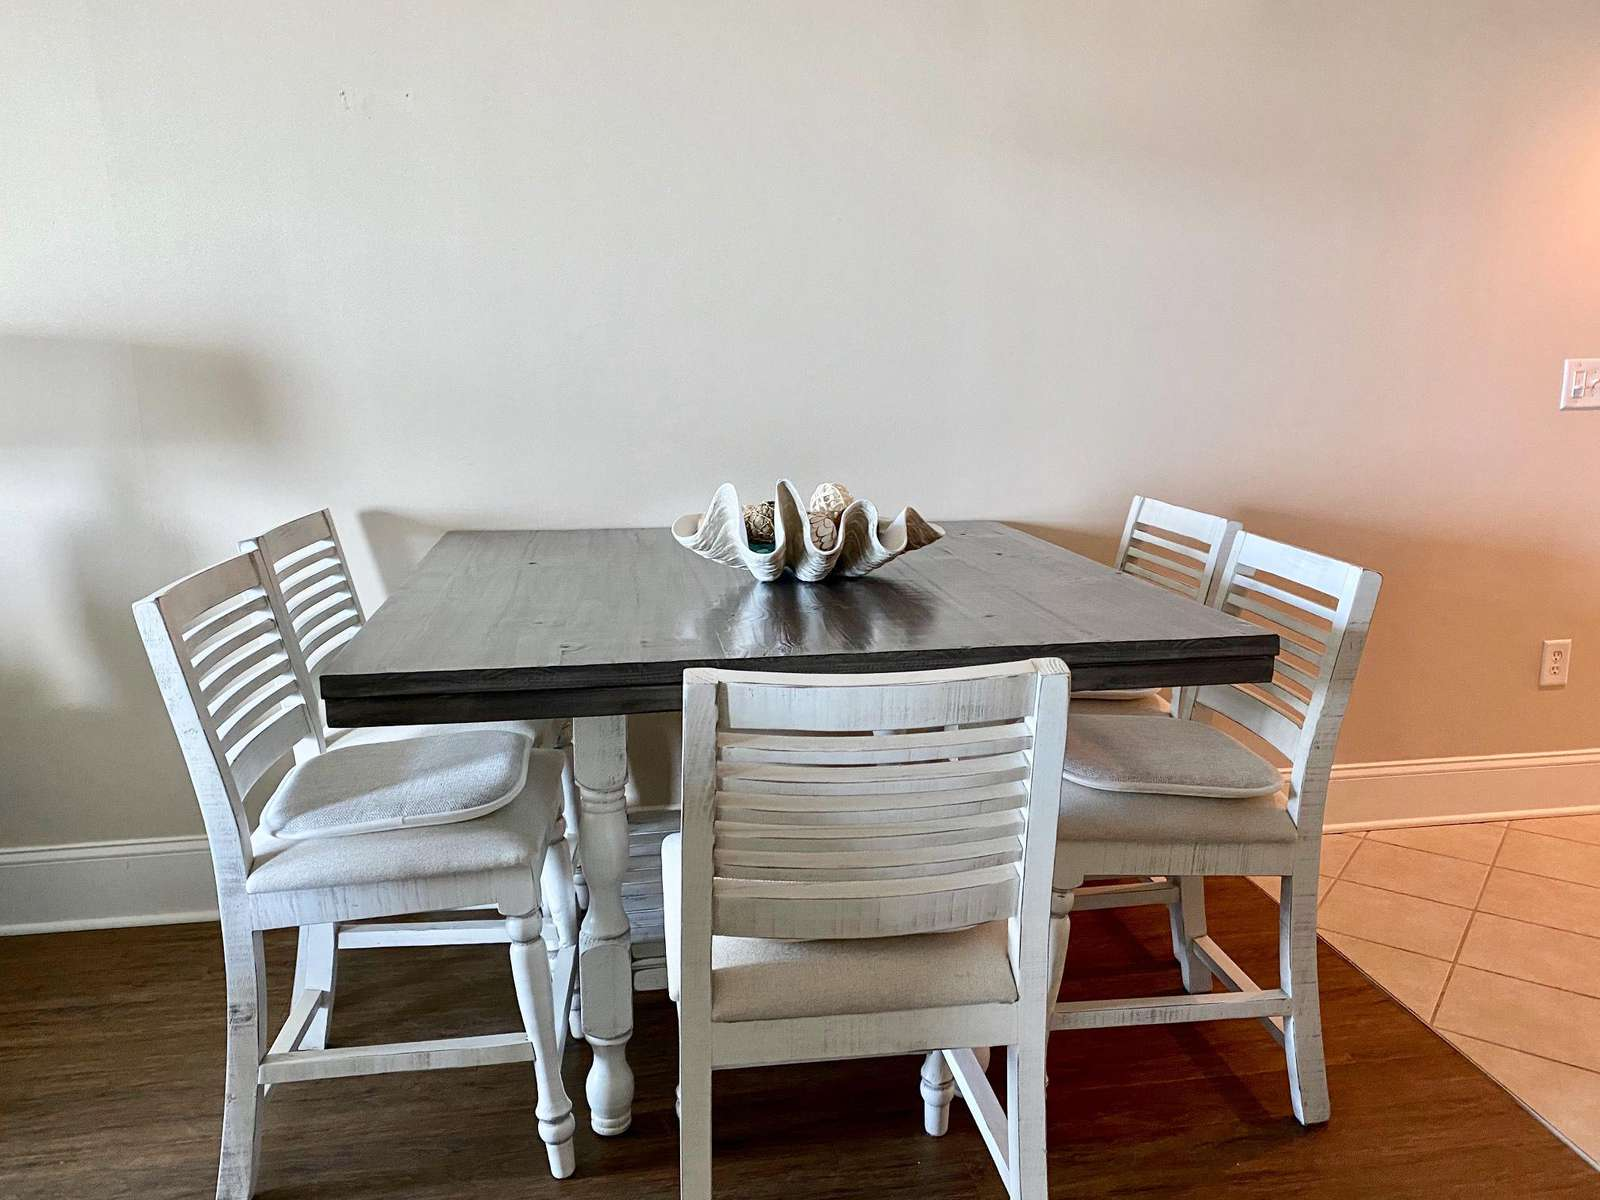 New dining furniture